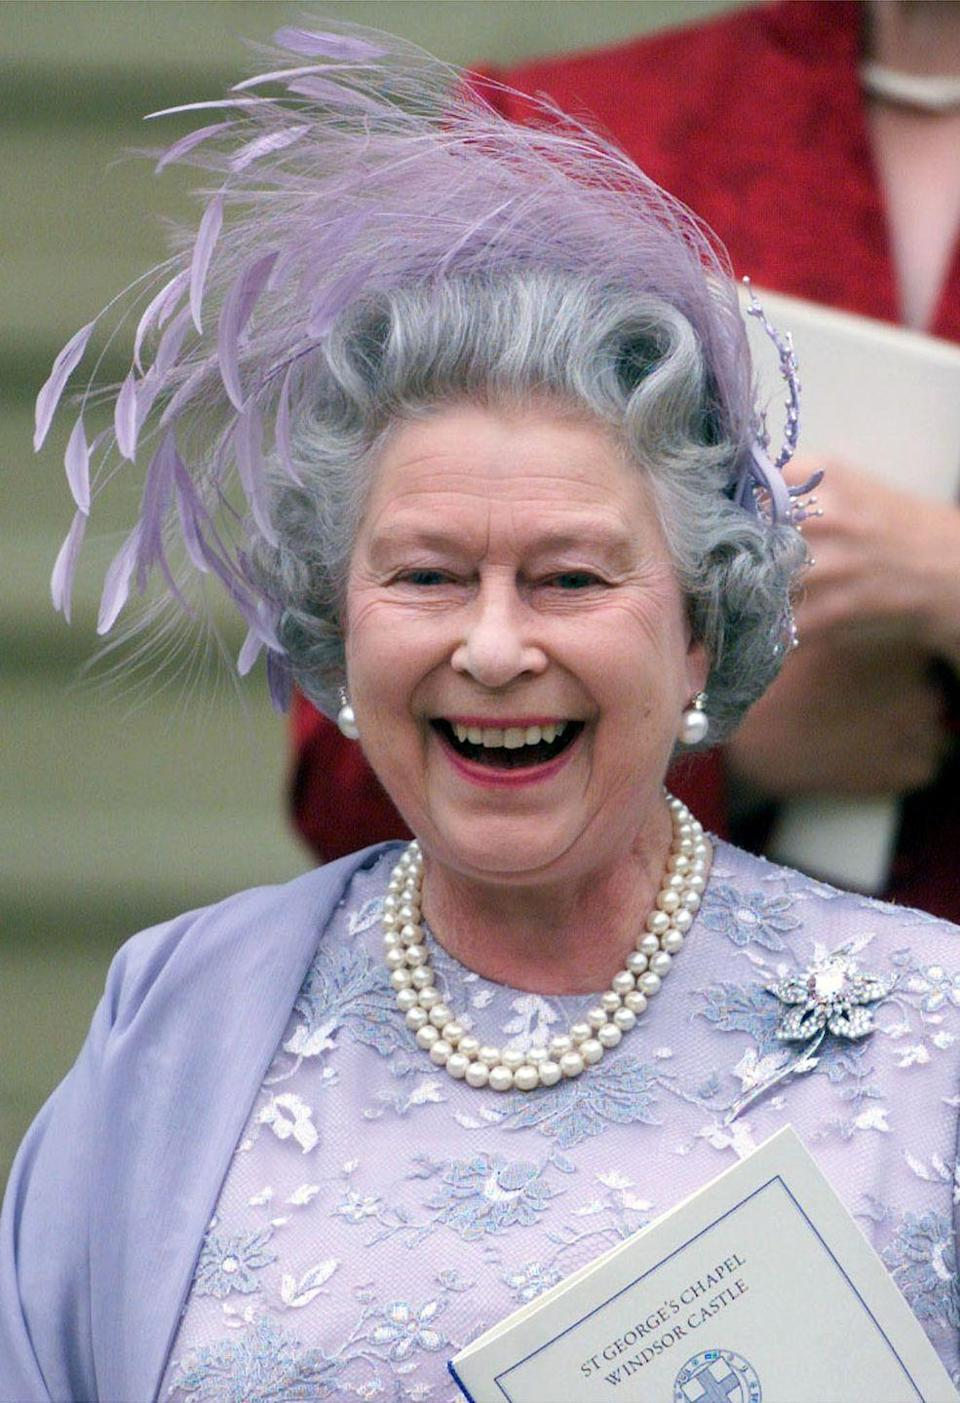 """<p>Queen Elizabeth II matched her mom in regal purple for the celebration.</p><p><strong><a href=""""https://www.townandcountrymag.com/society/tradition/g15881437/royal-weddings-history-windsor-castle-st-georges-chapel/"""" rel=""""nofollow noopener"""" target=""""_blank"""" data-ylk=""""slk:See more photos from that day here."""" class=""""link rapid-noclick-resp"""">See more photos from that day here.</a></strong></p>"""